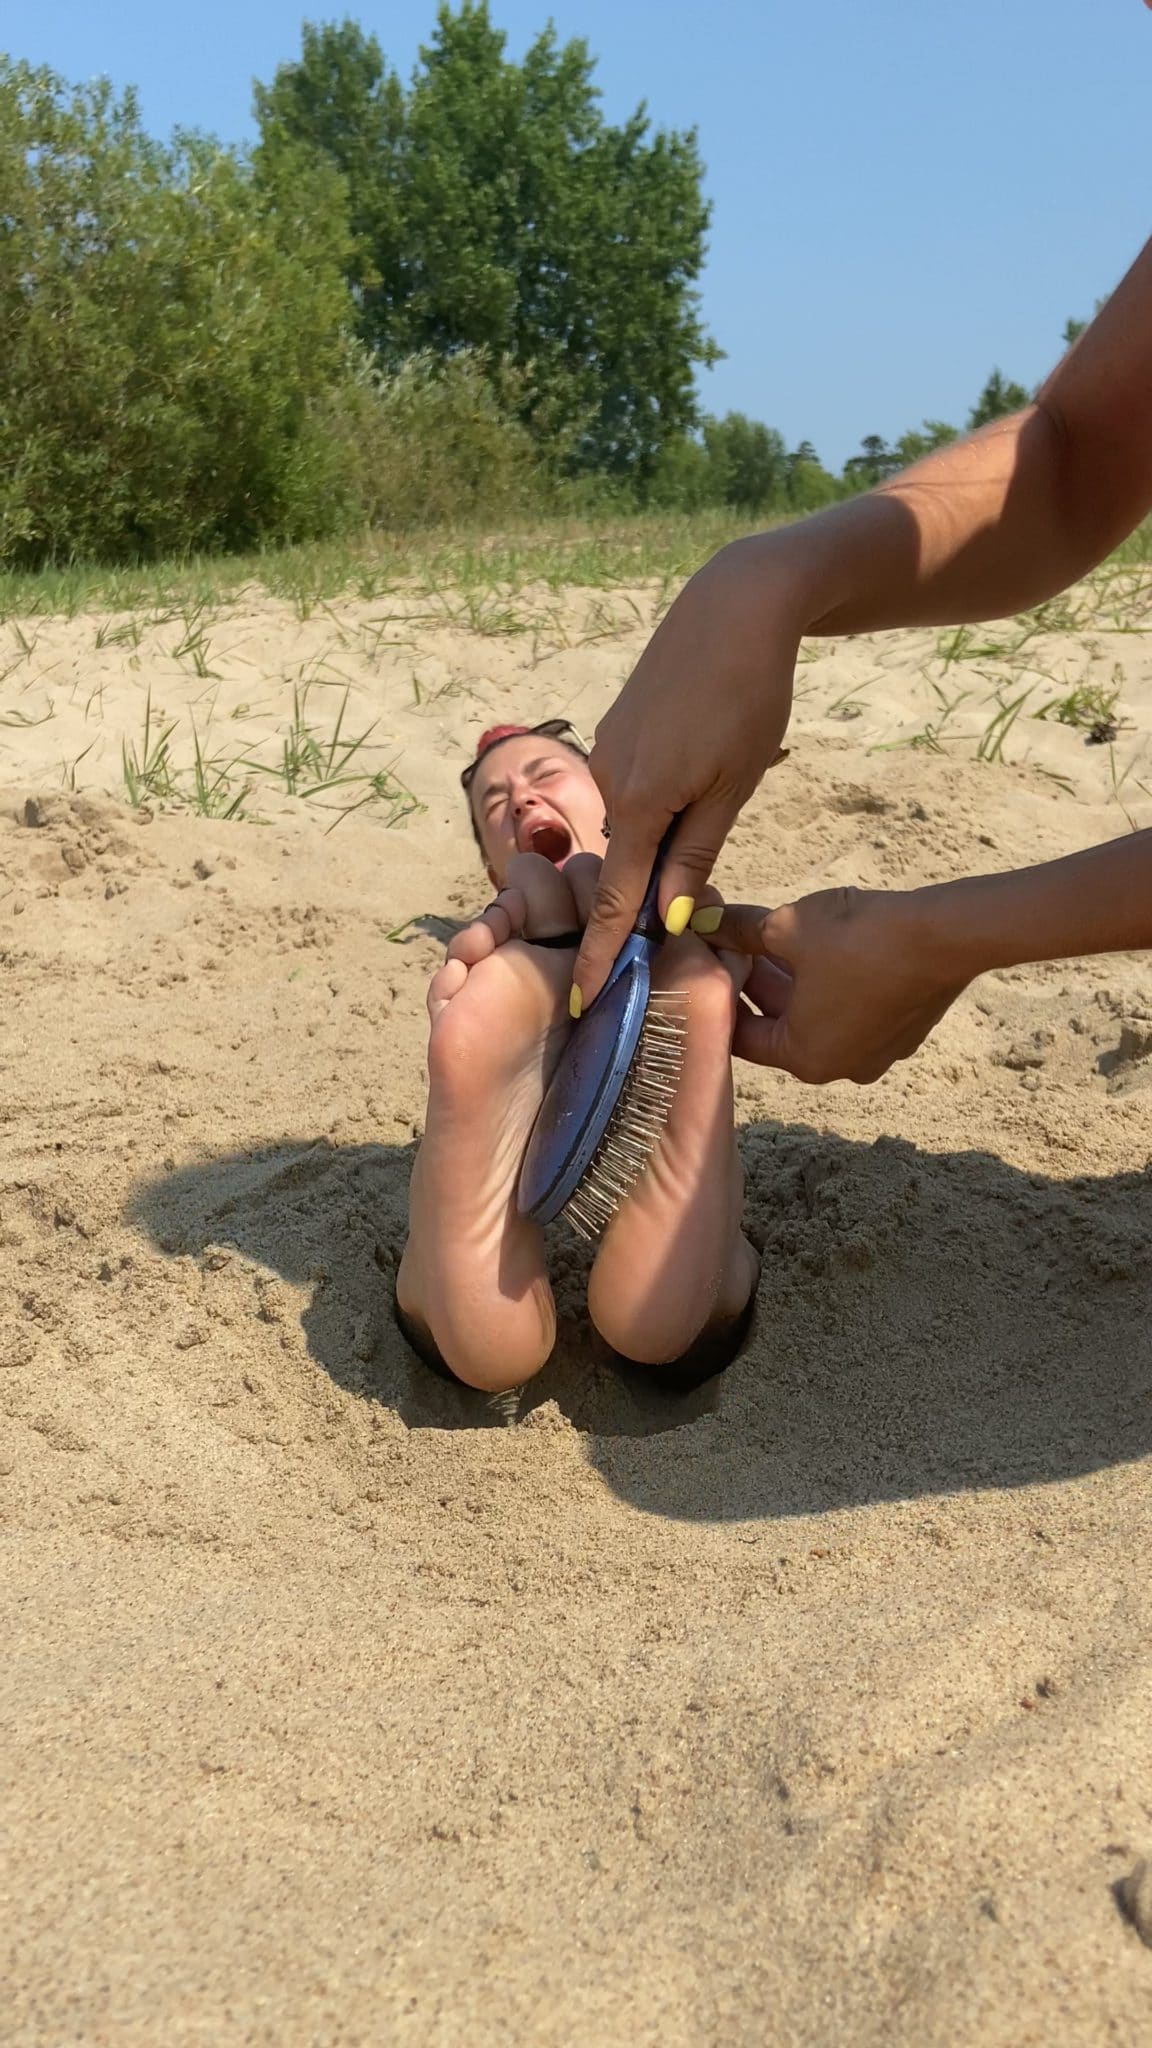 Olga gets revenge and tickles Mila's Feet! Buried in the sand Public Beach tickling!